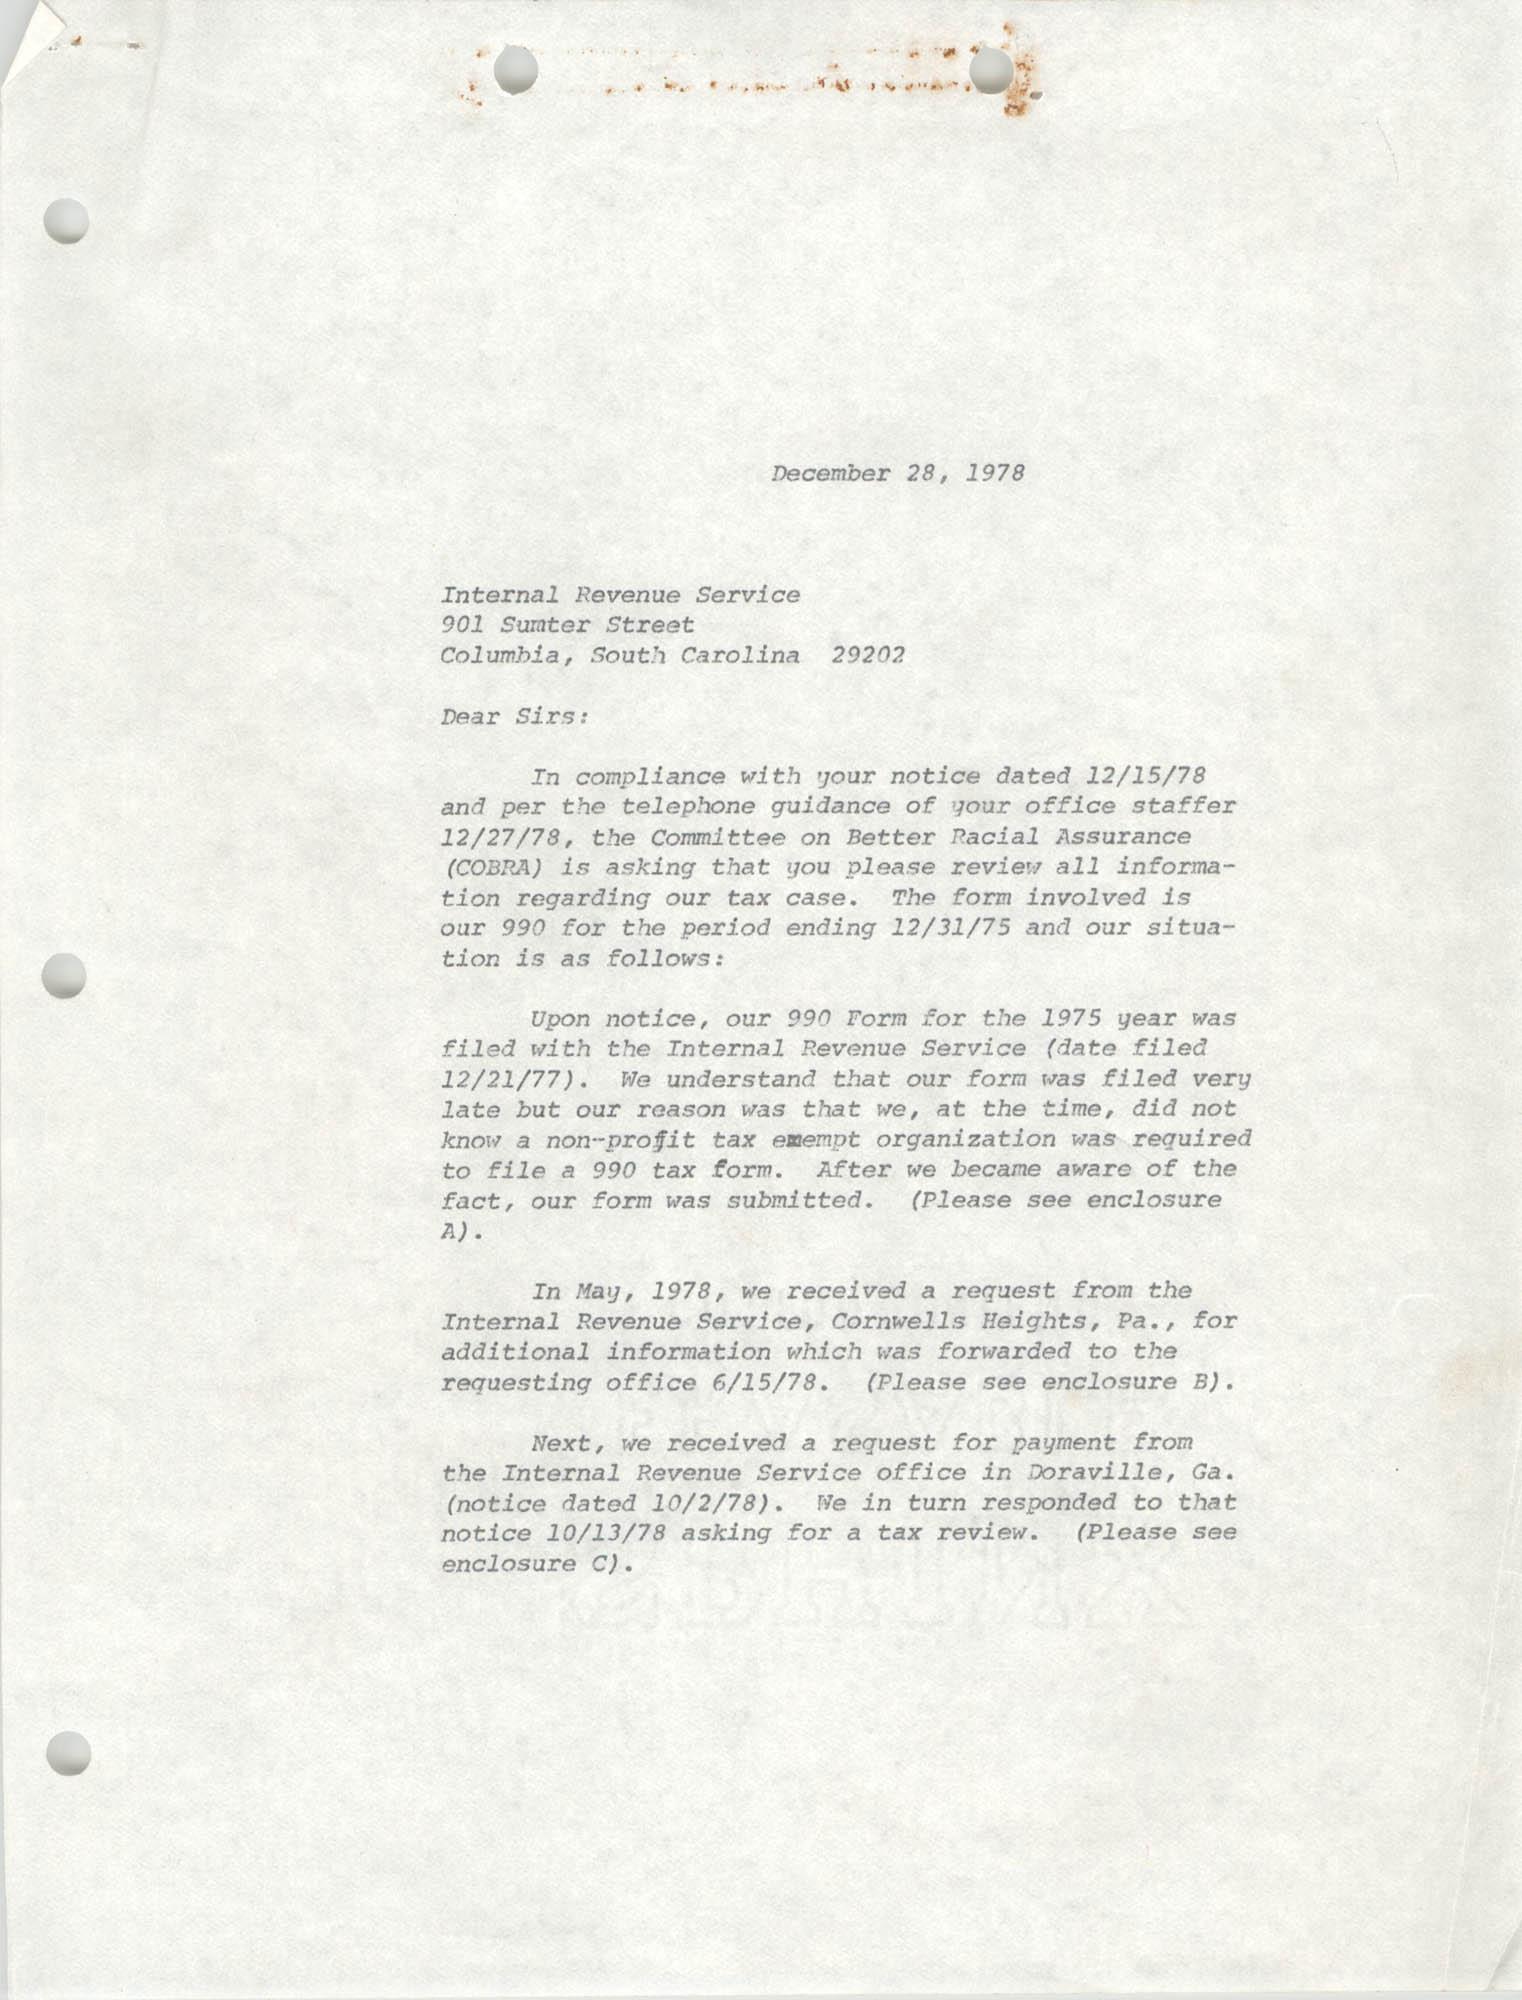 Letter from Deborah McBeth and William Saunders to the IRS, December 28, 1978